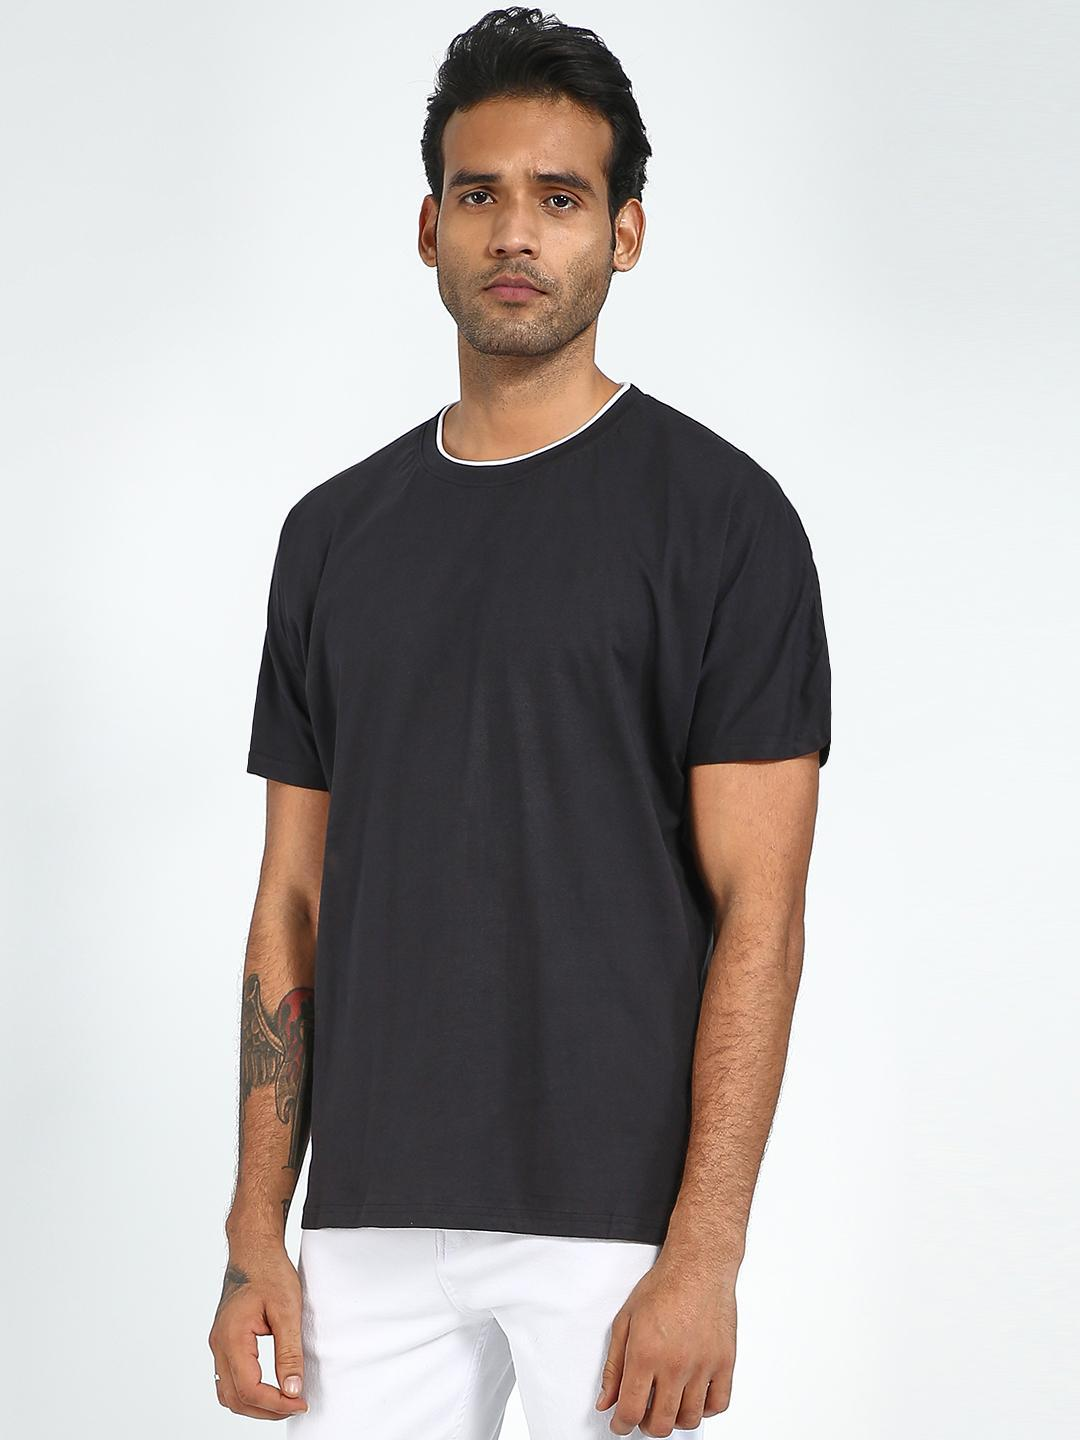 Blue Saint Black Men's Black OverSized Round Neck T-Shirt 1